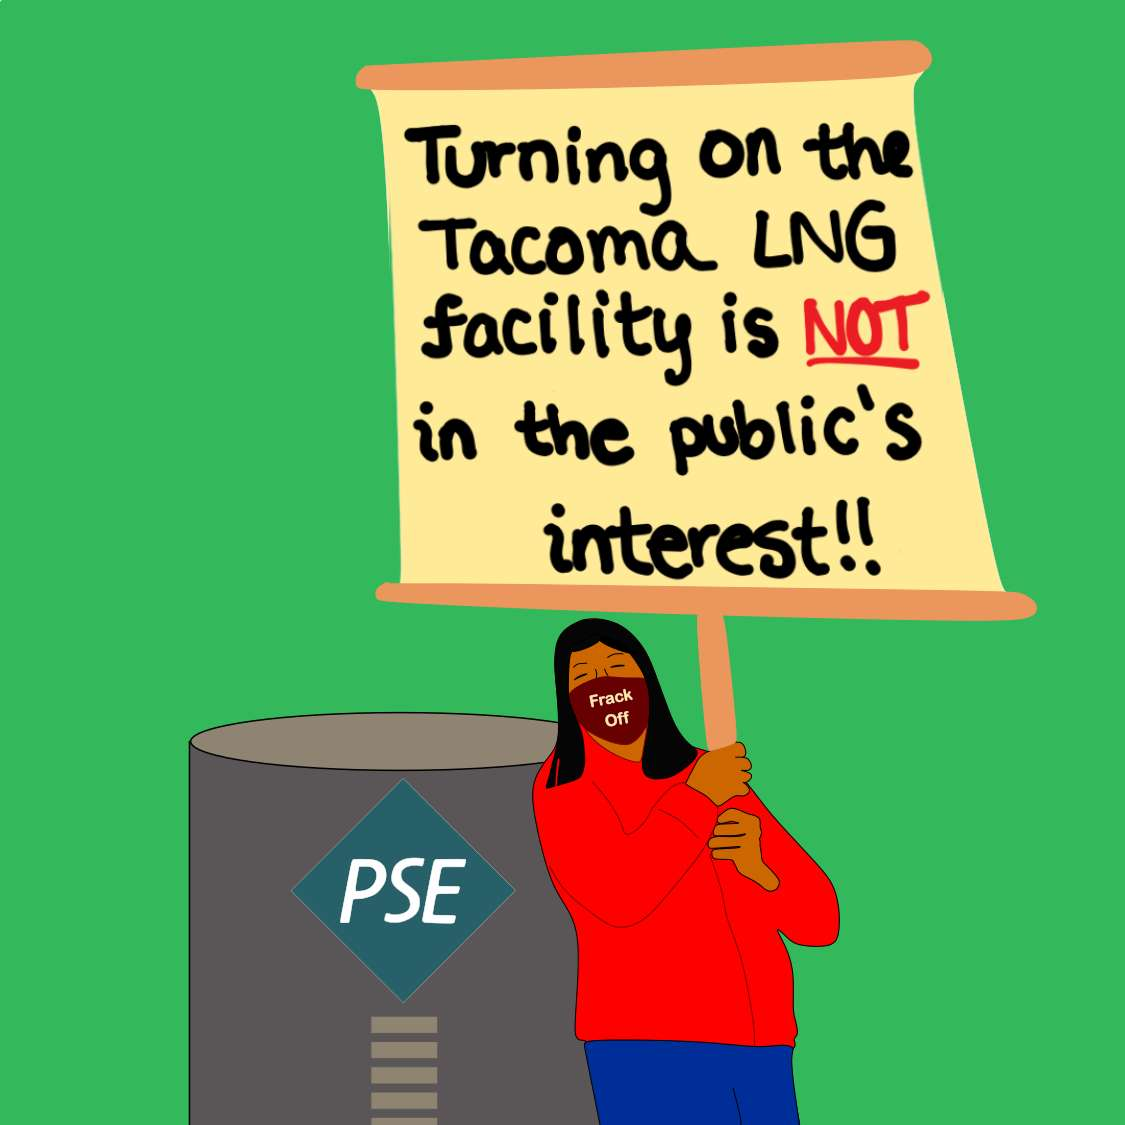 Turning on the Tacoma LNG facility is NOT in the public's interest!!